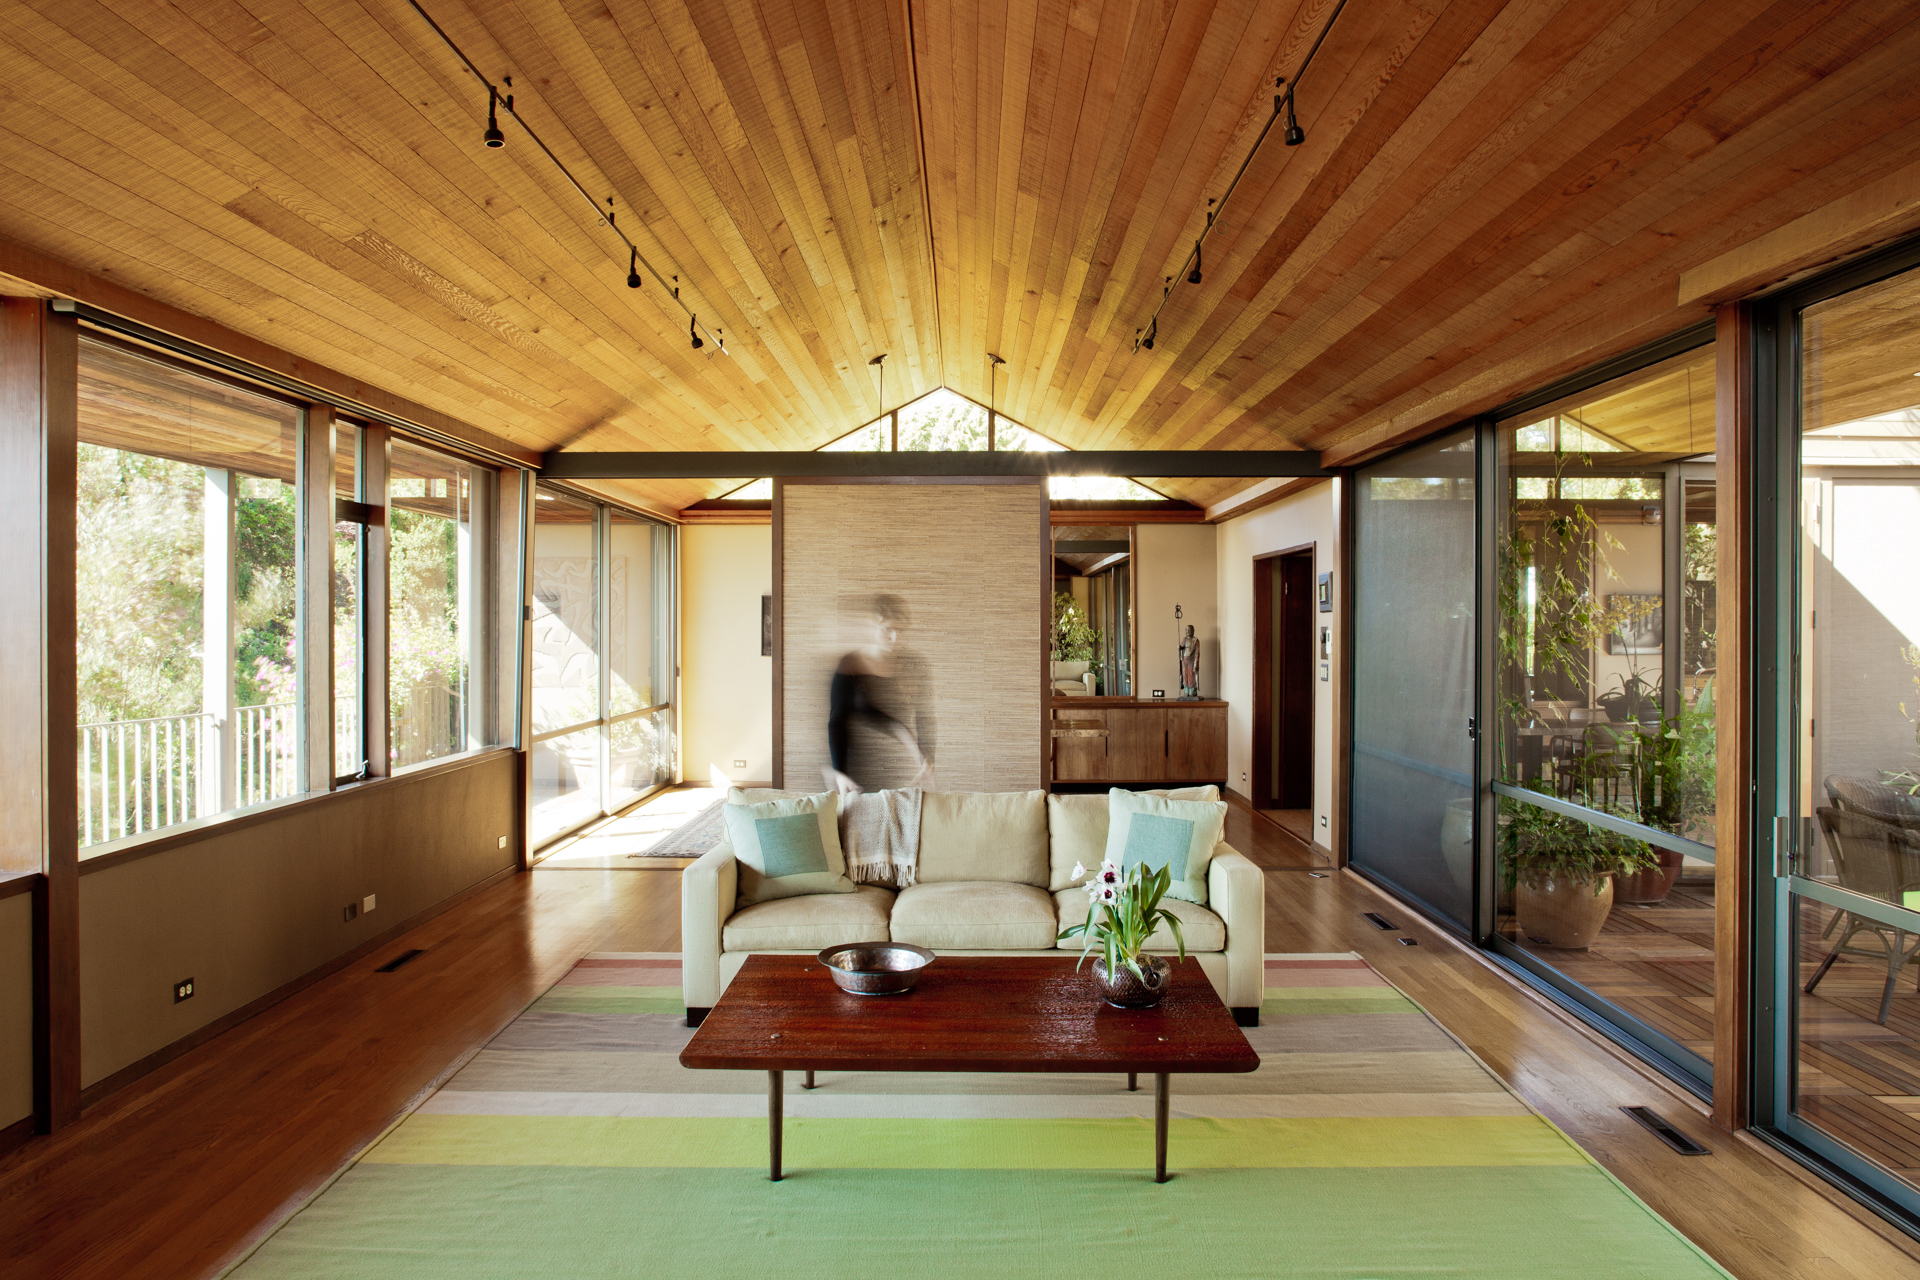 Mid-Century modern house features glass walls onto porch and to inner courtyard.